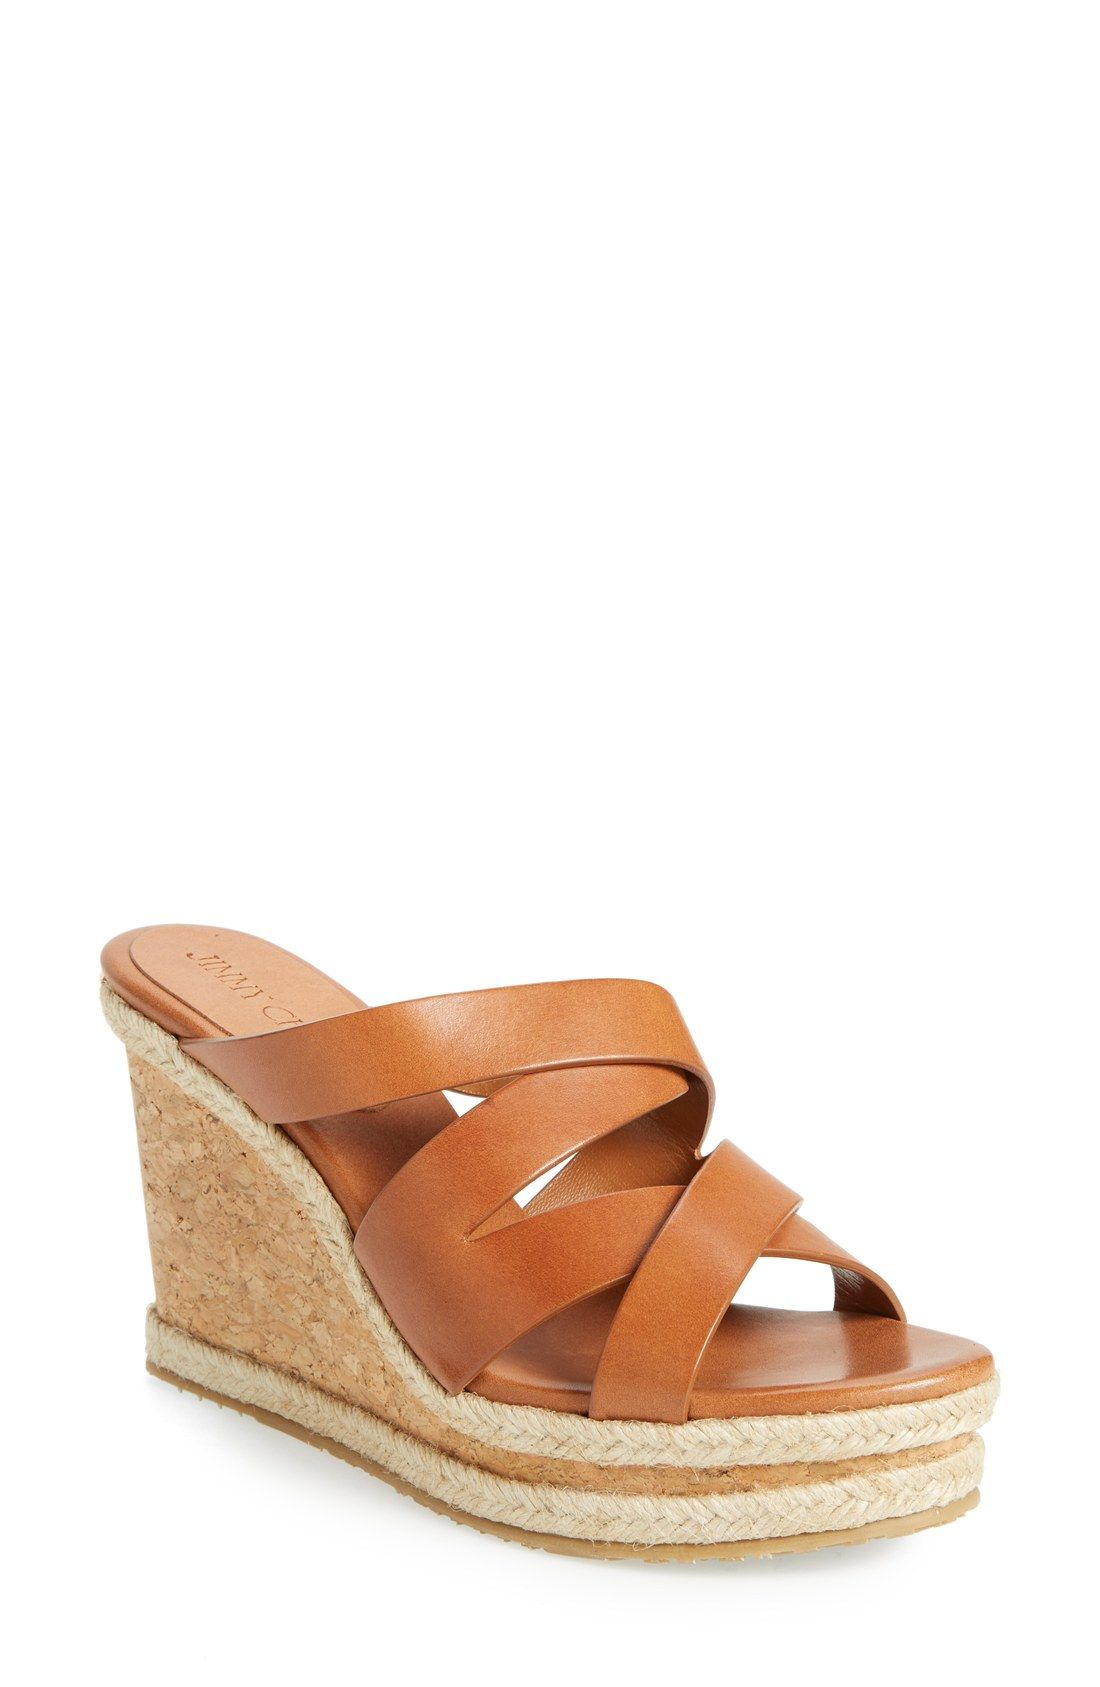 4b475ab171d1 Jimmy Choo  Prisma  Leather Wedge Sandal (Women)